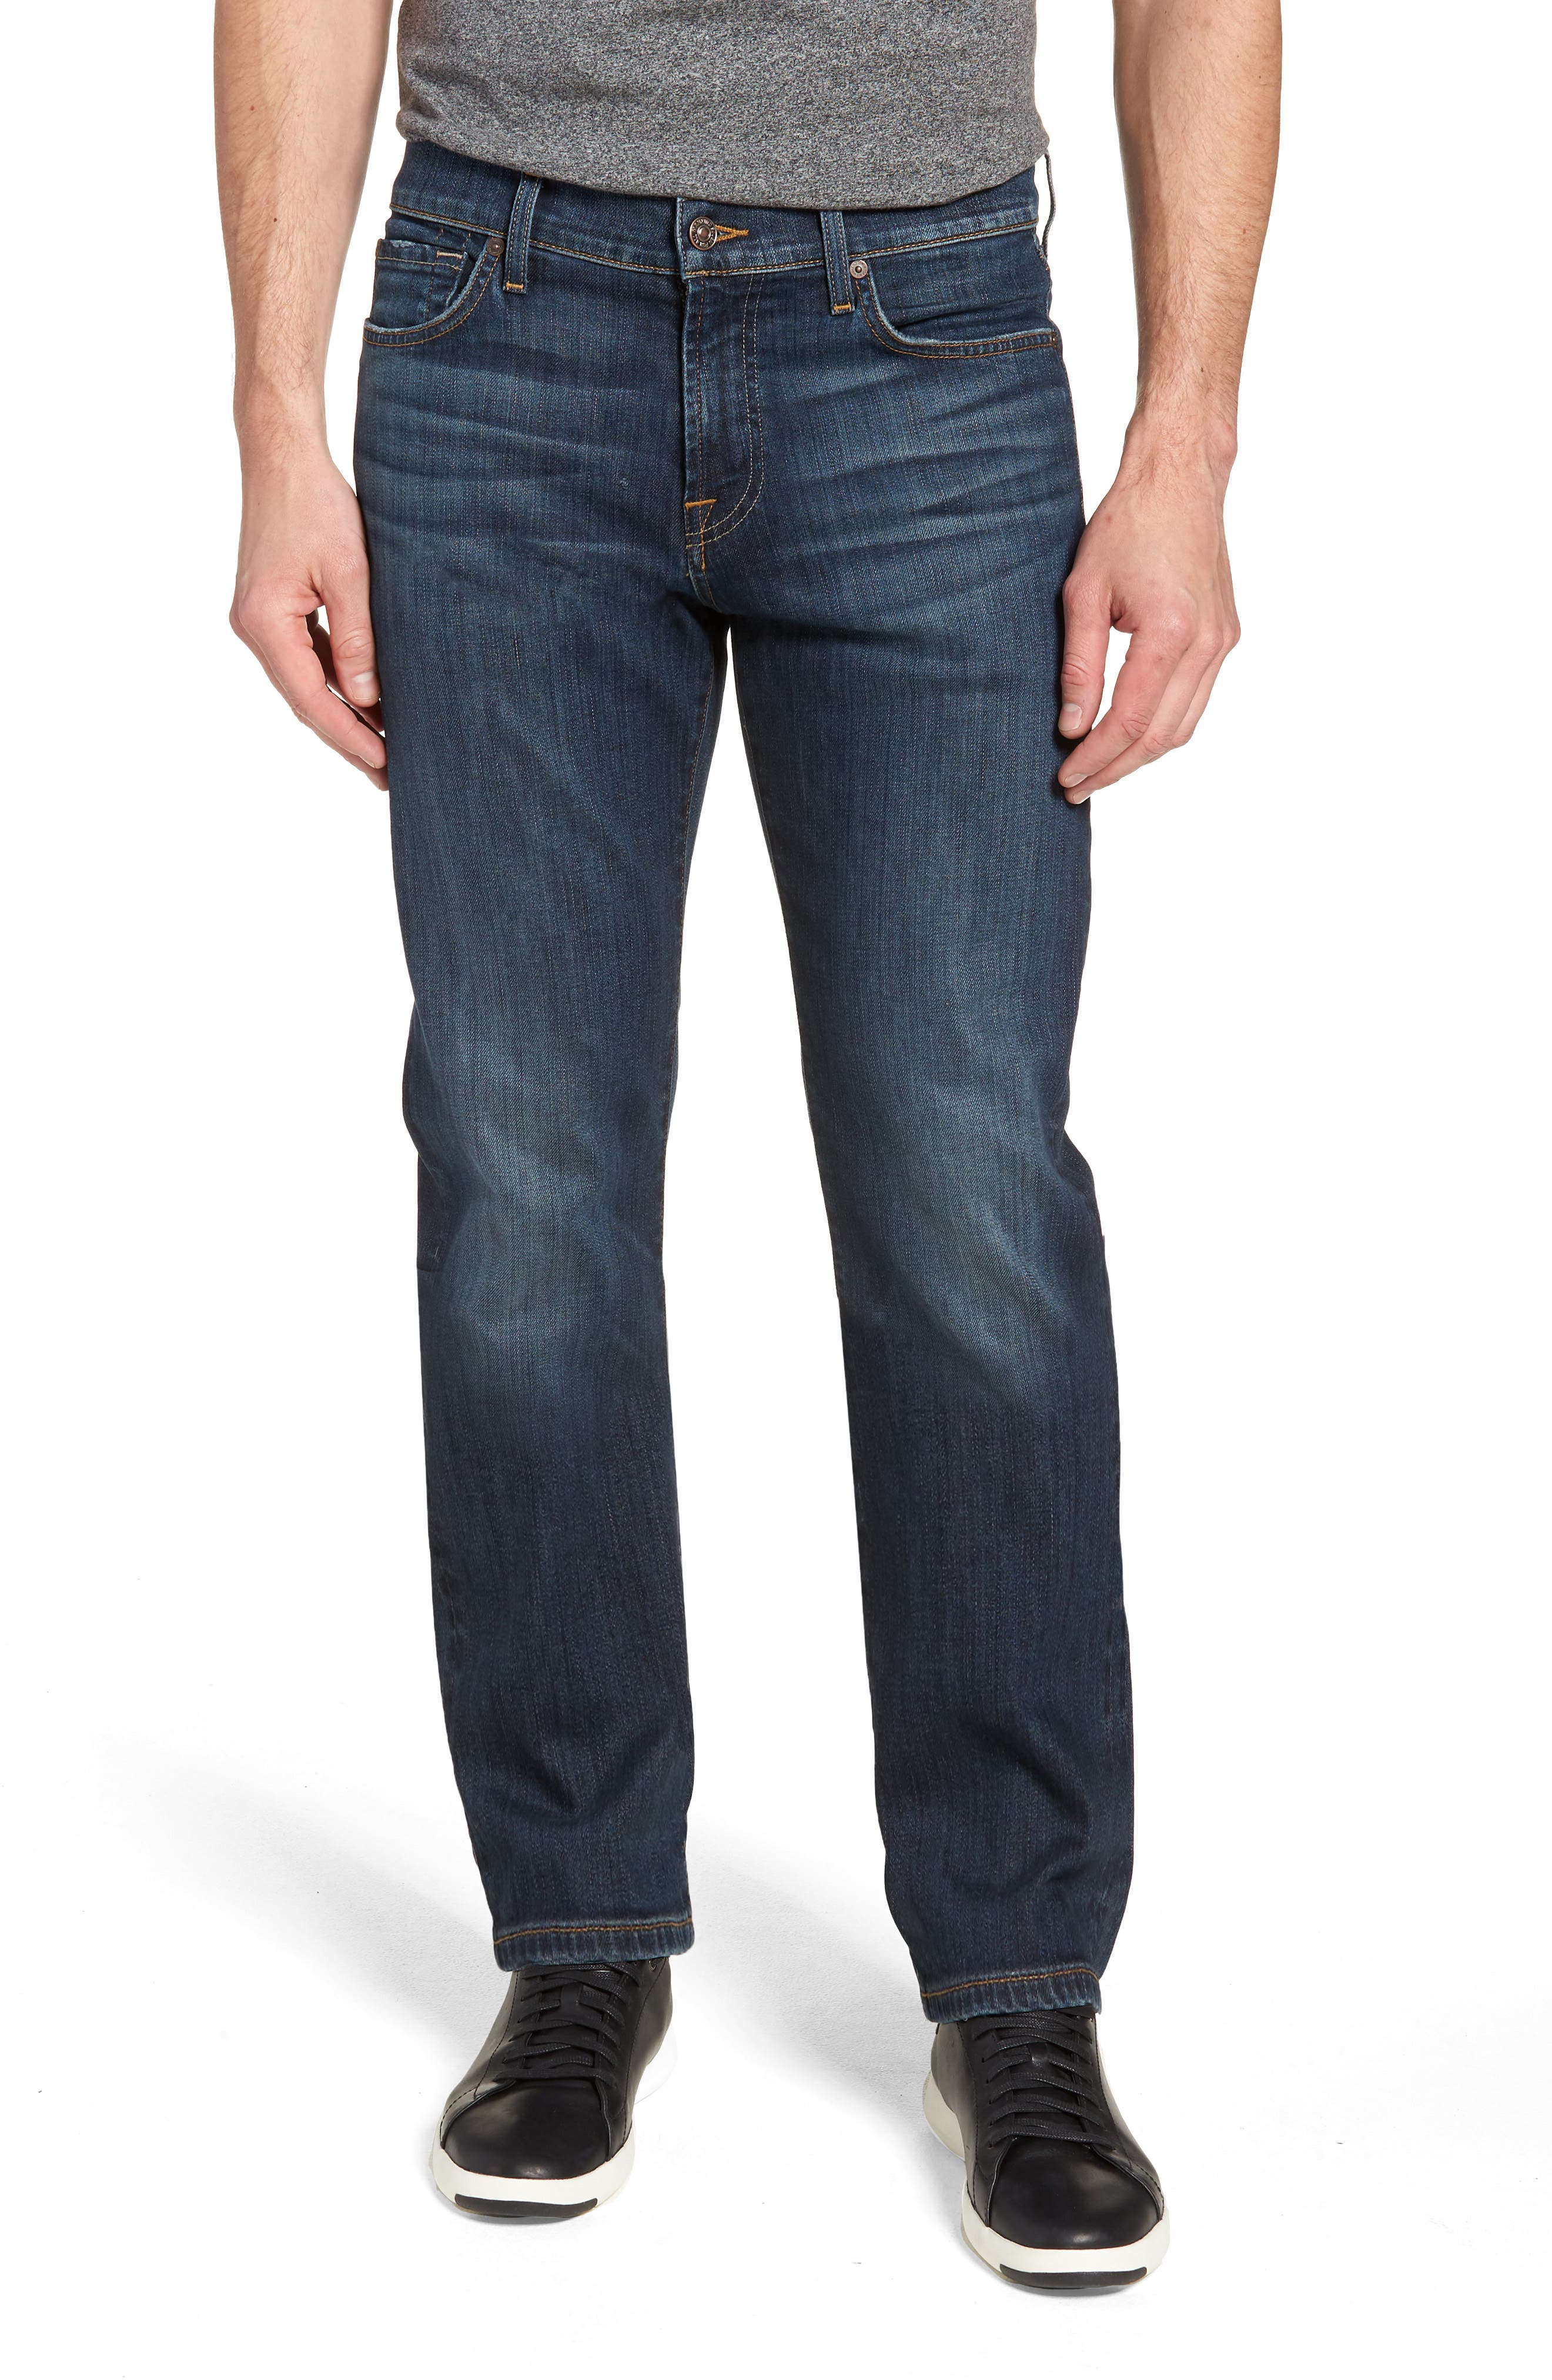 Luxe Performance Standard Straight Leg Jeans,                             Main thumbnail 1, color,                             LUXE PERFORMANCE YELM